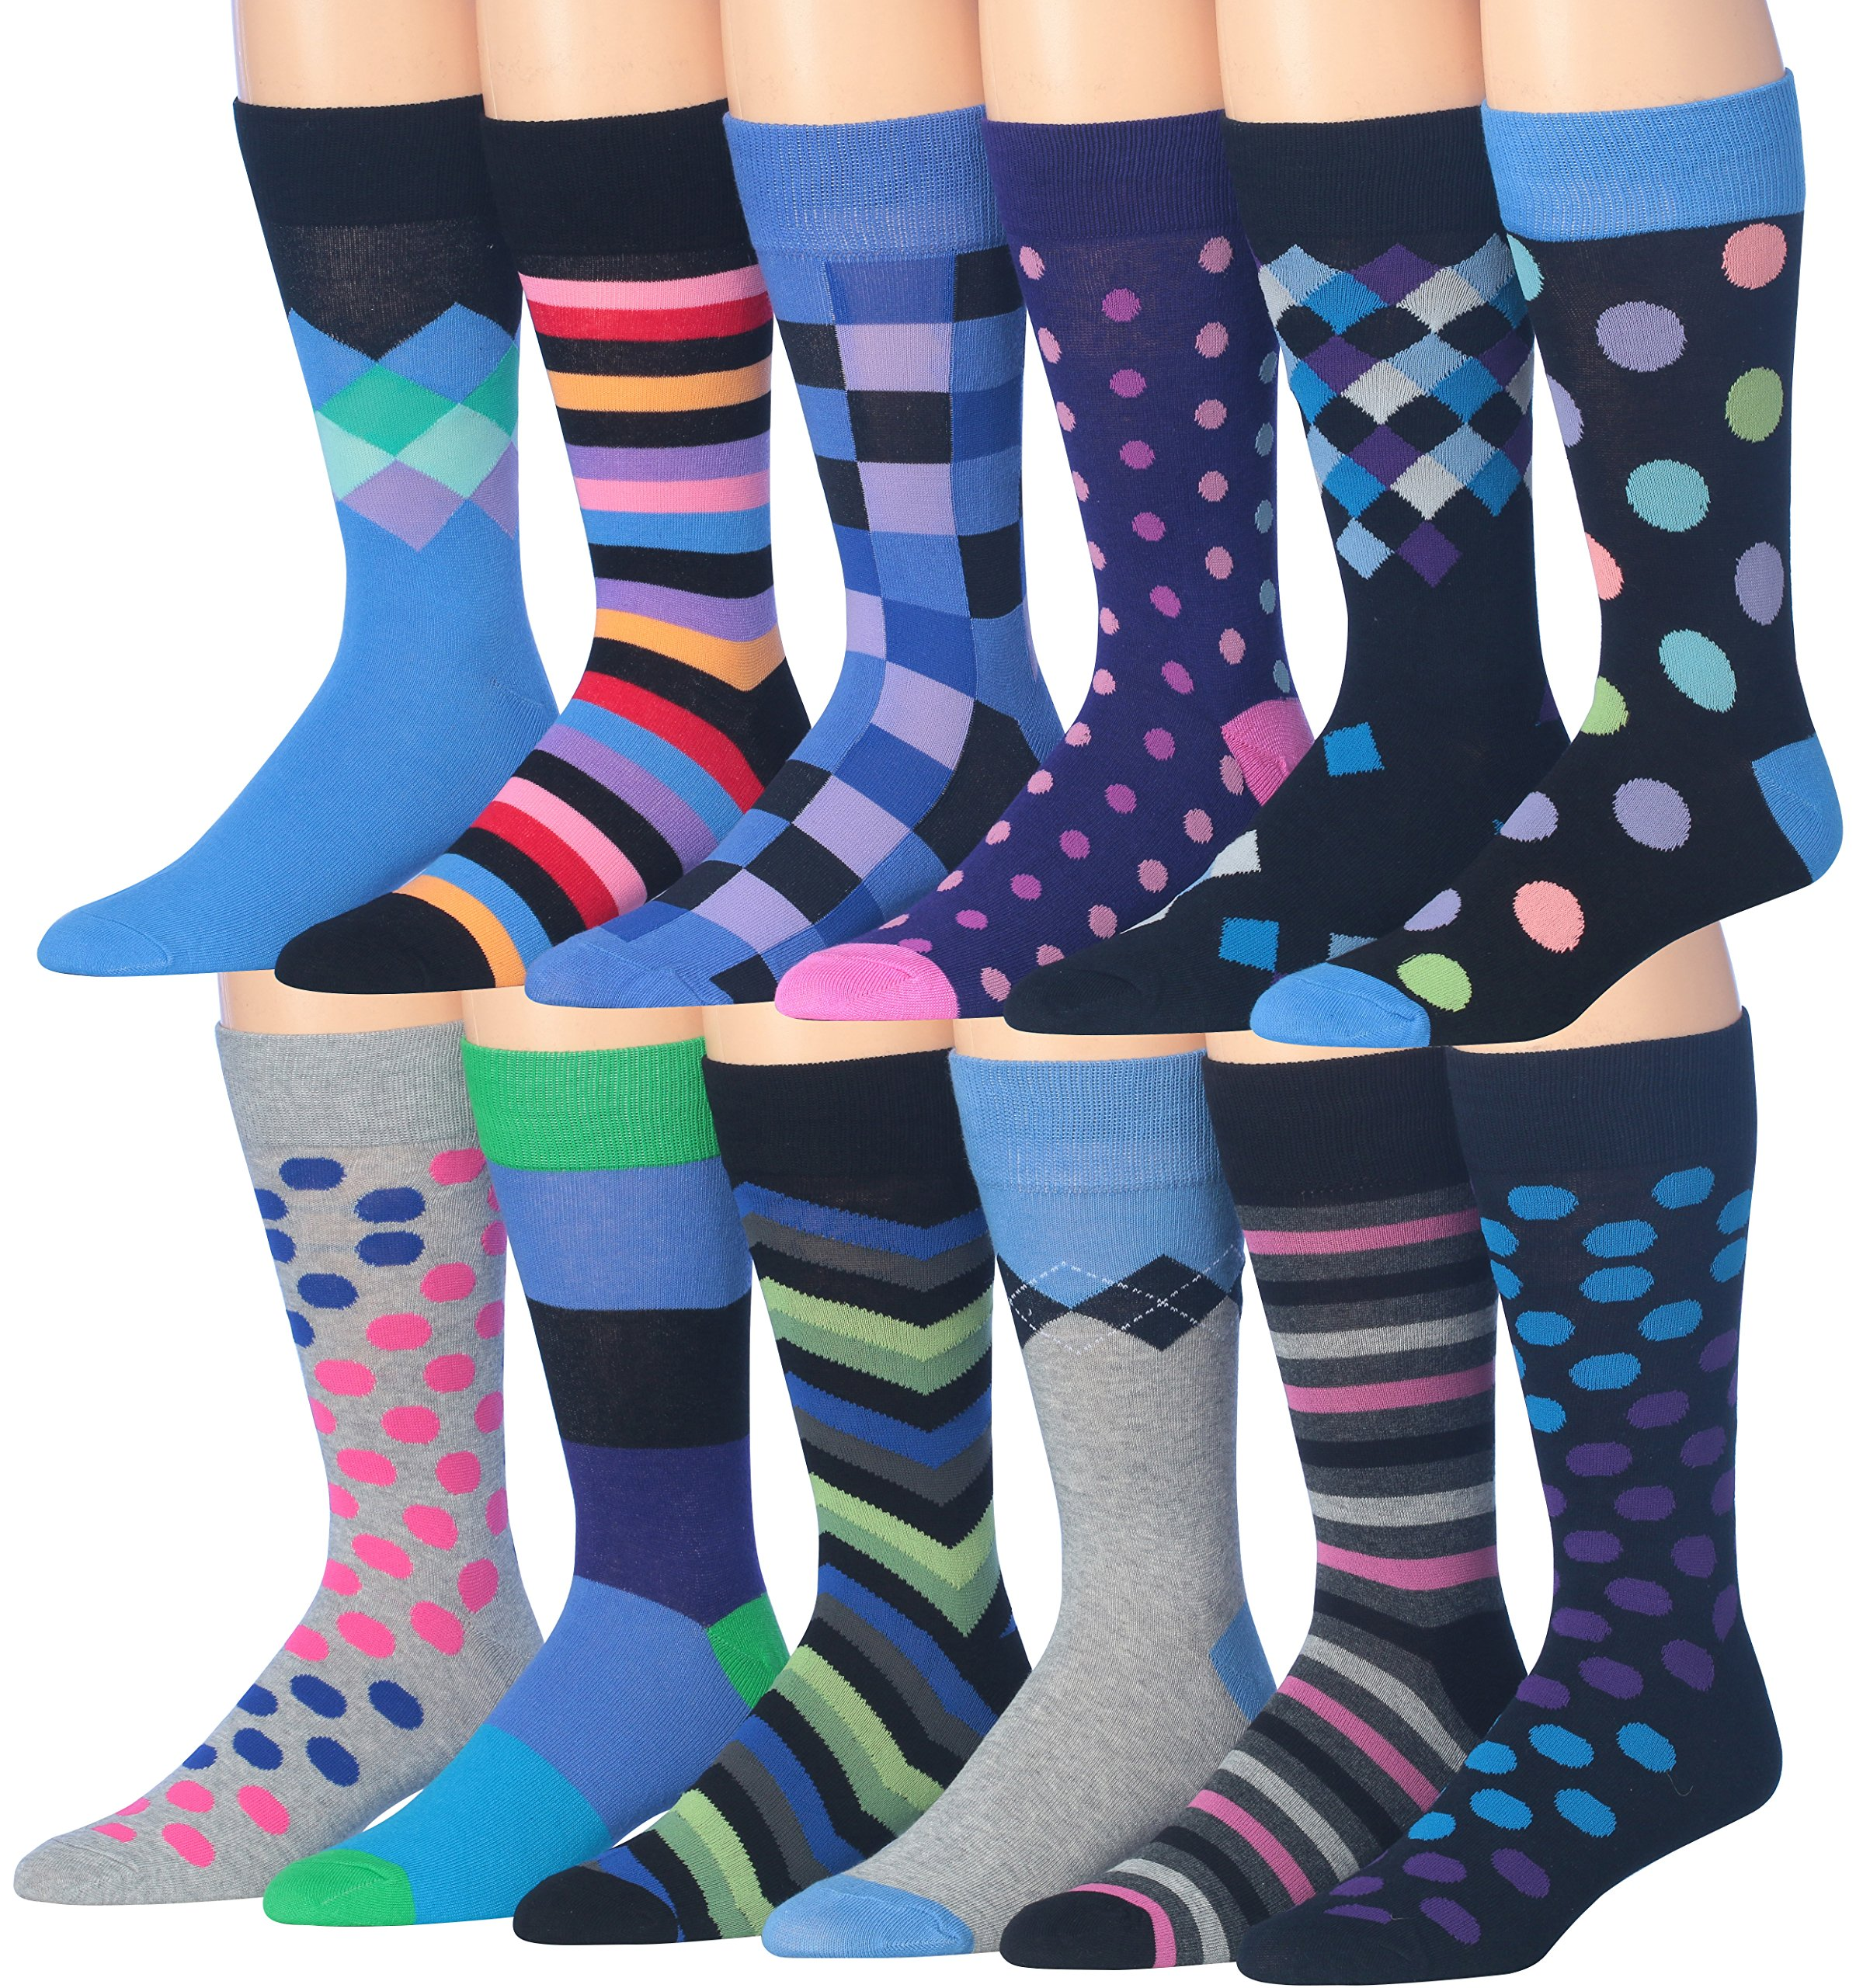 Colorfut Men's 12 Pairs Soft Cotton Colorful Funky Gift Box Dress Socks, Fits shoe 6-12 (sock size 10-13), CMC02